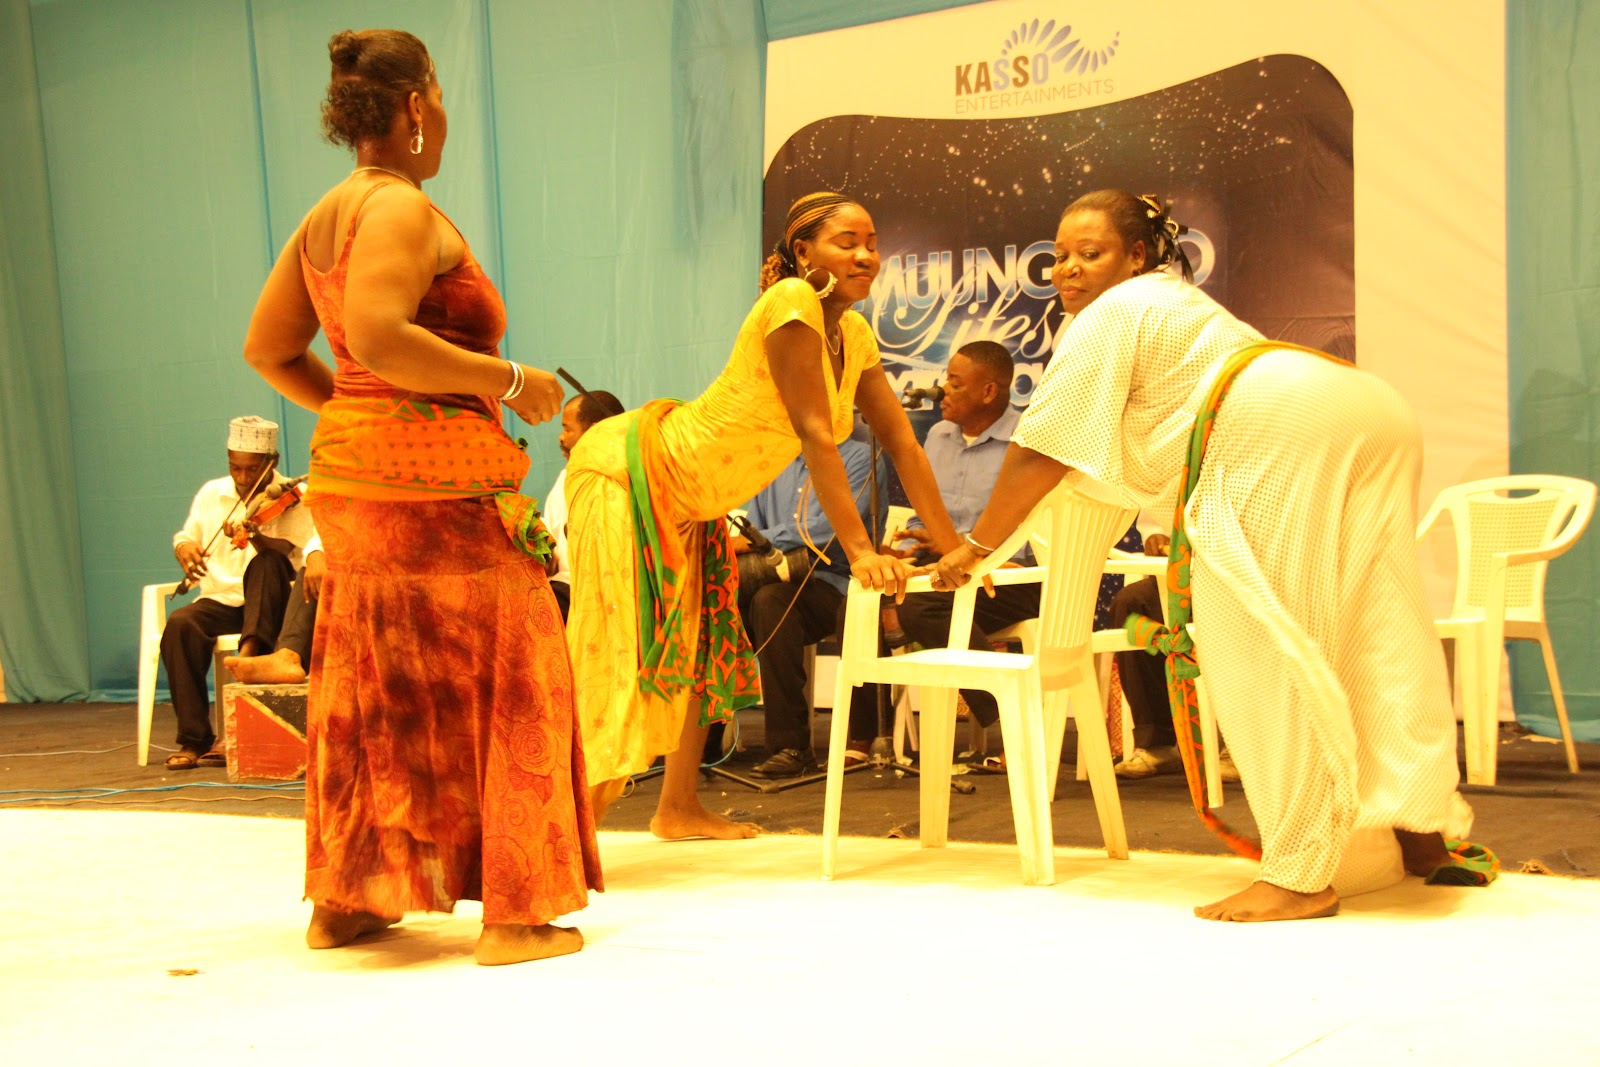 This Is Baikoko A Tradtional Dance From Tanga As Played